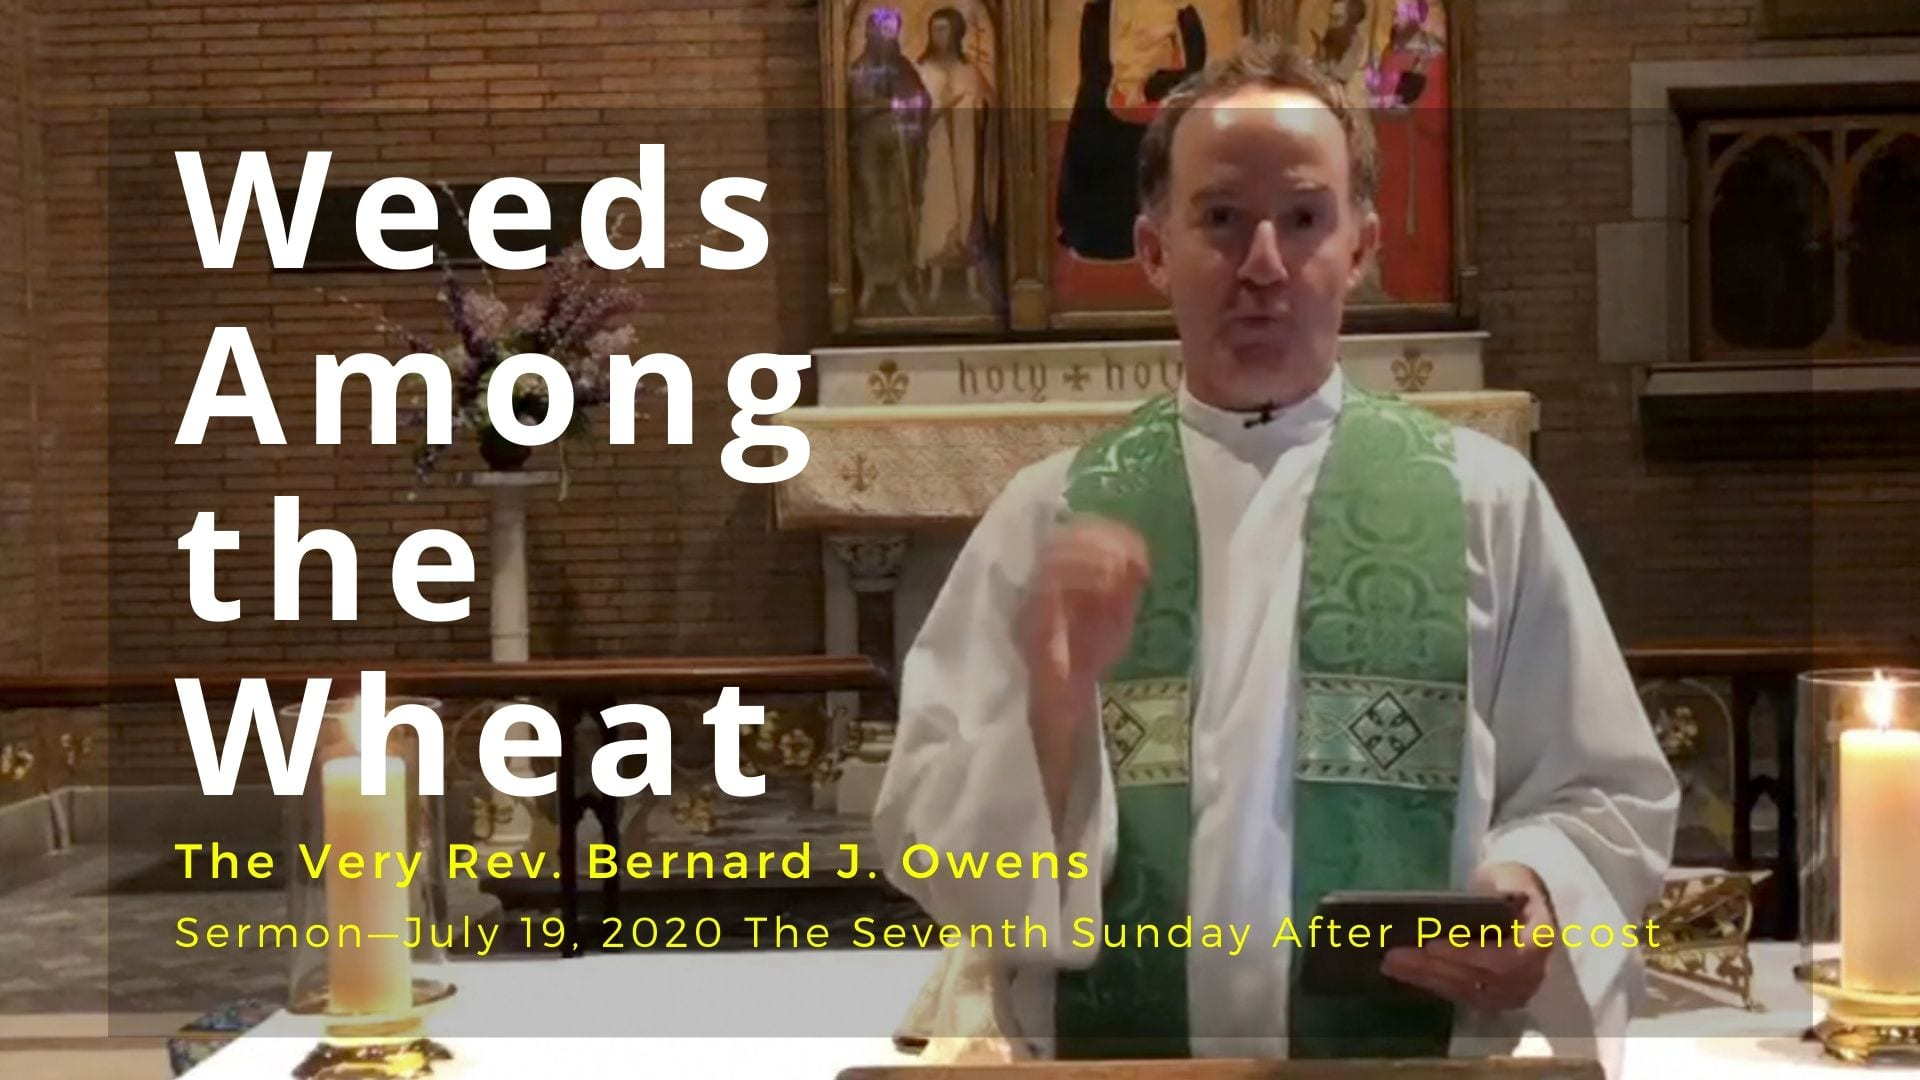 Sermon Podcast: Weeds Among the Wheat